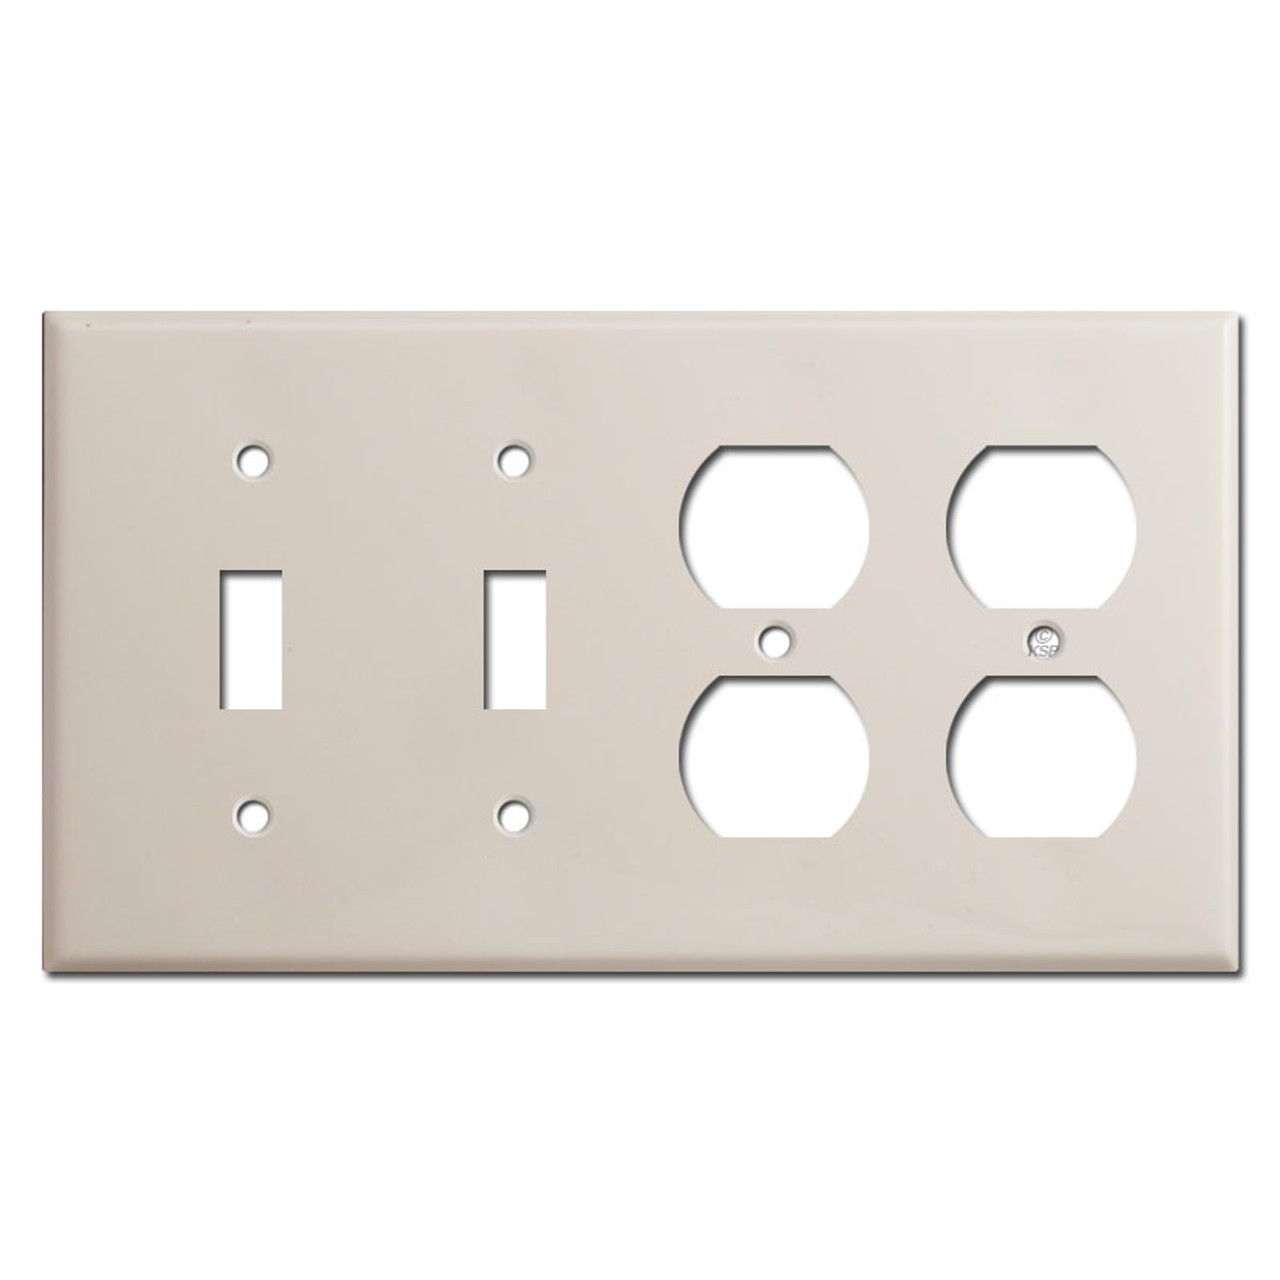 2 Toggle 2 Outlet Cover Switch Plates Light Almond